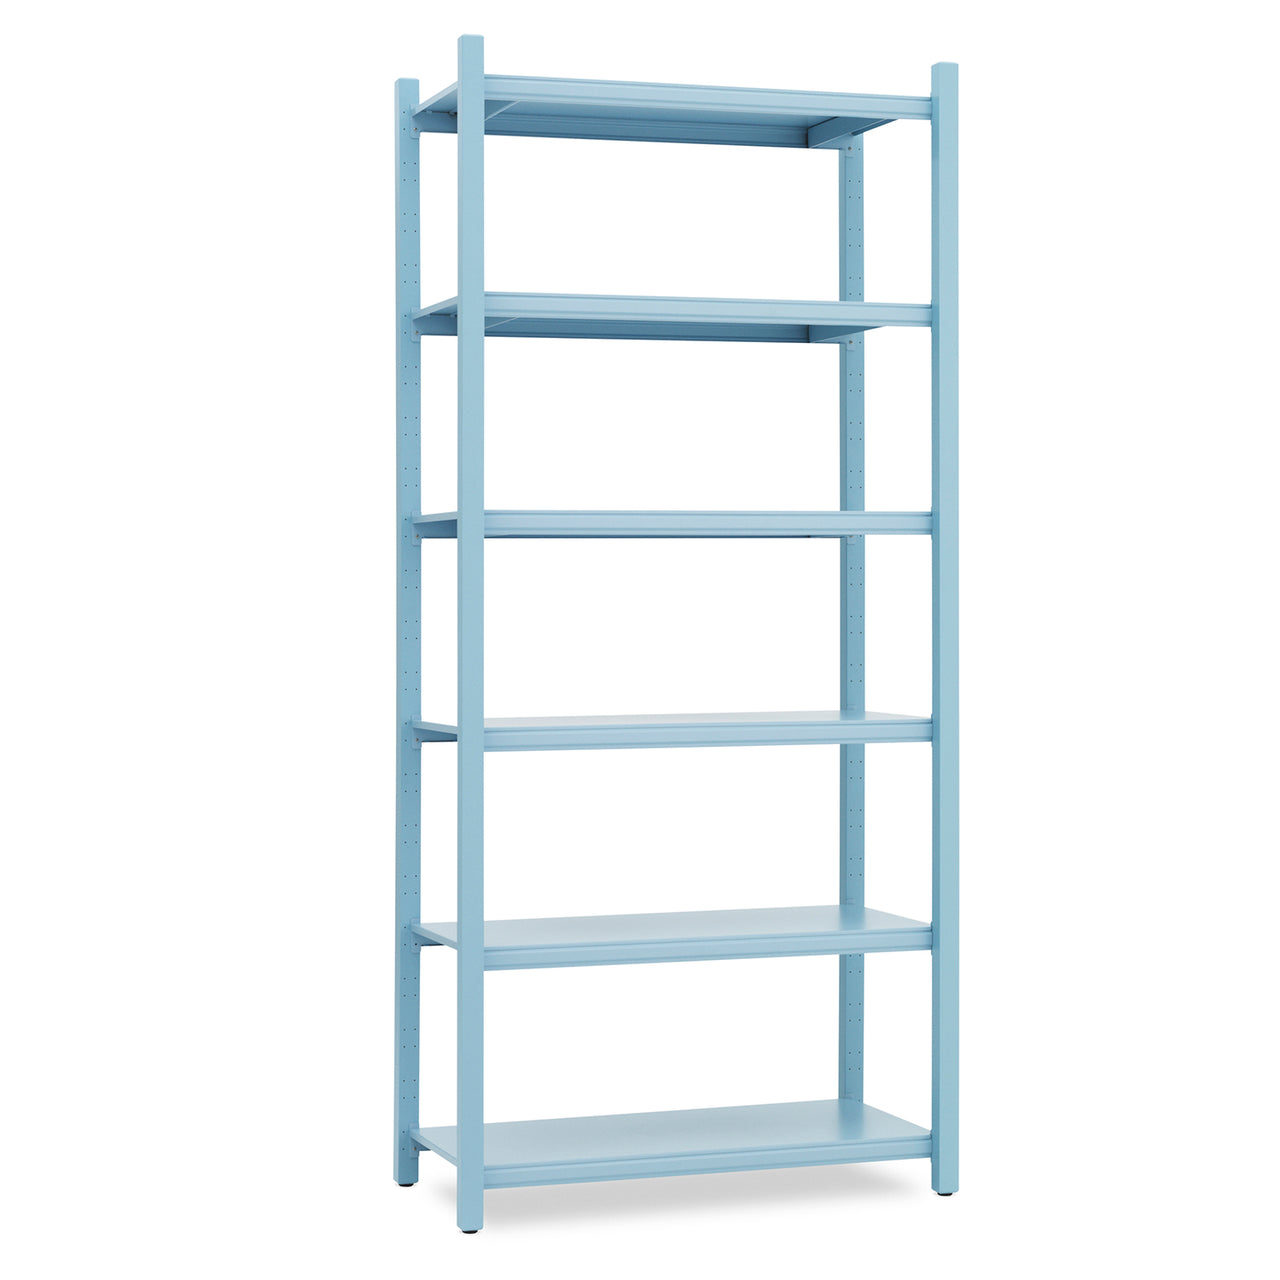 Work Bookcase: High + 4 Pillar + Powder Blue